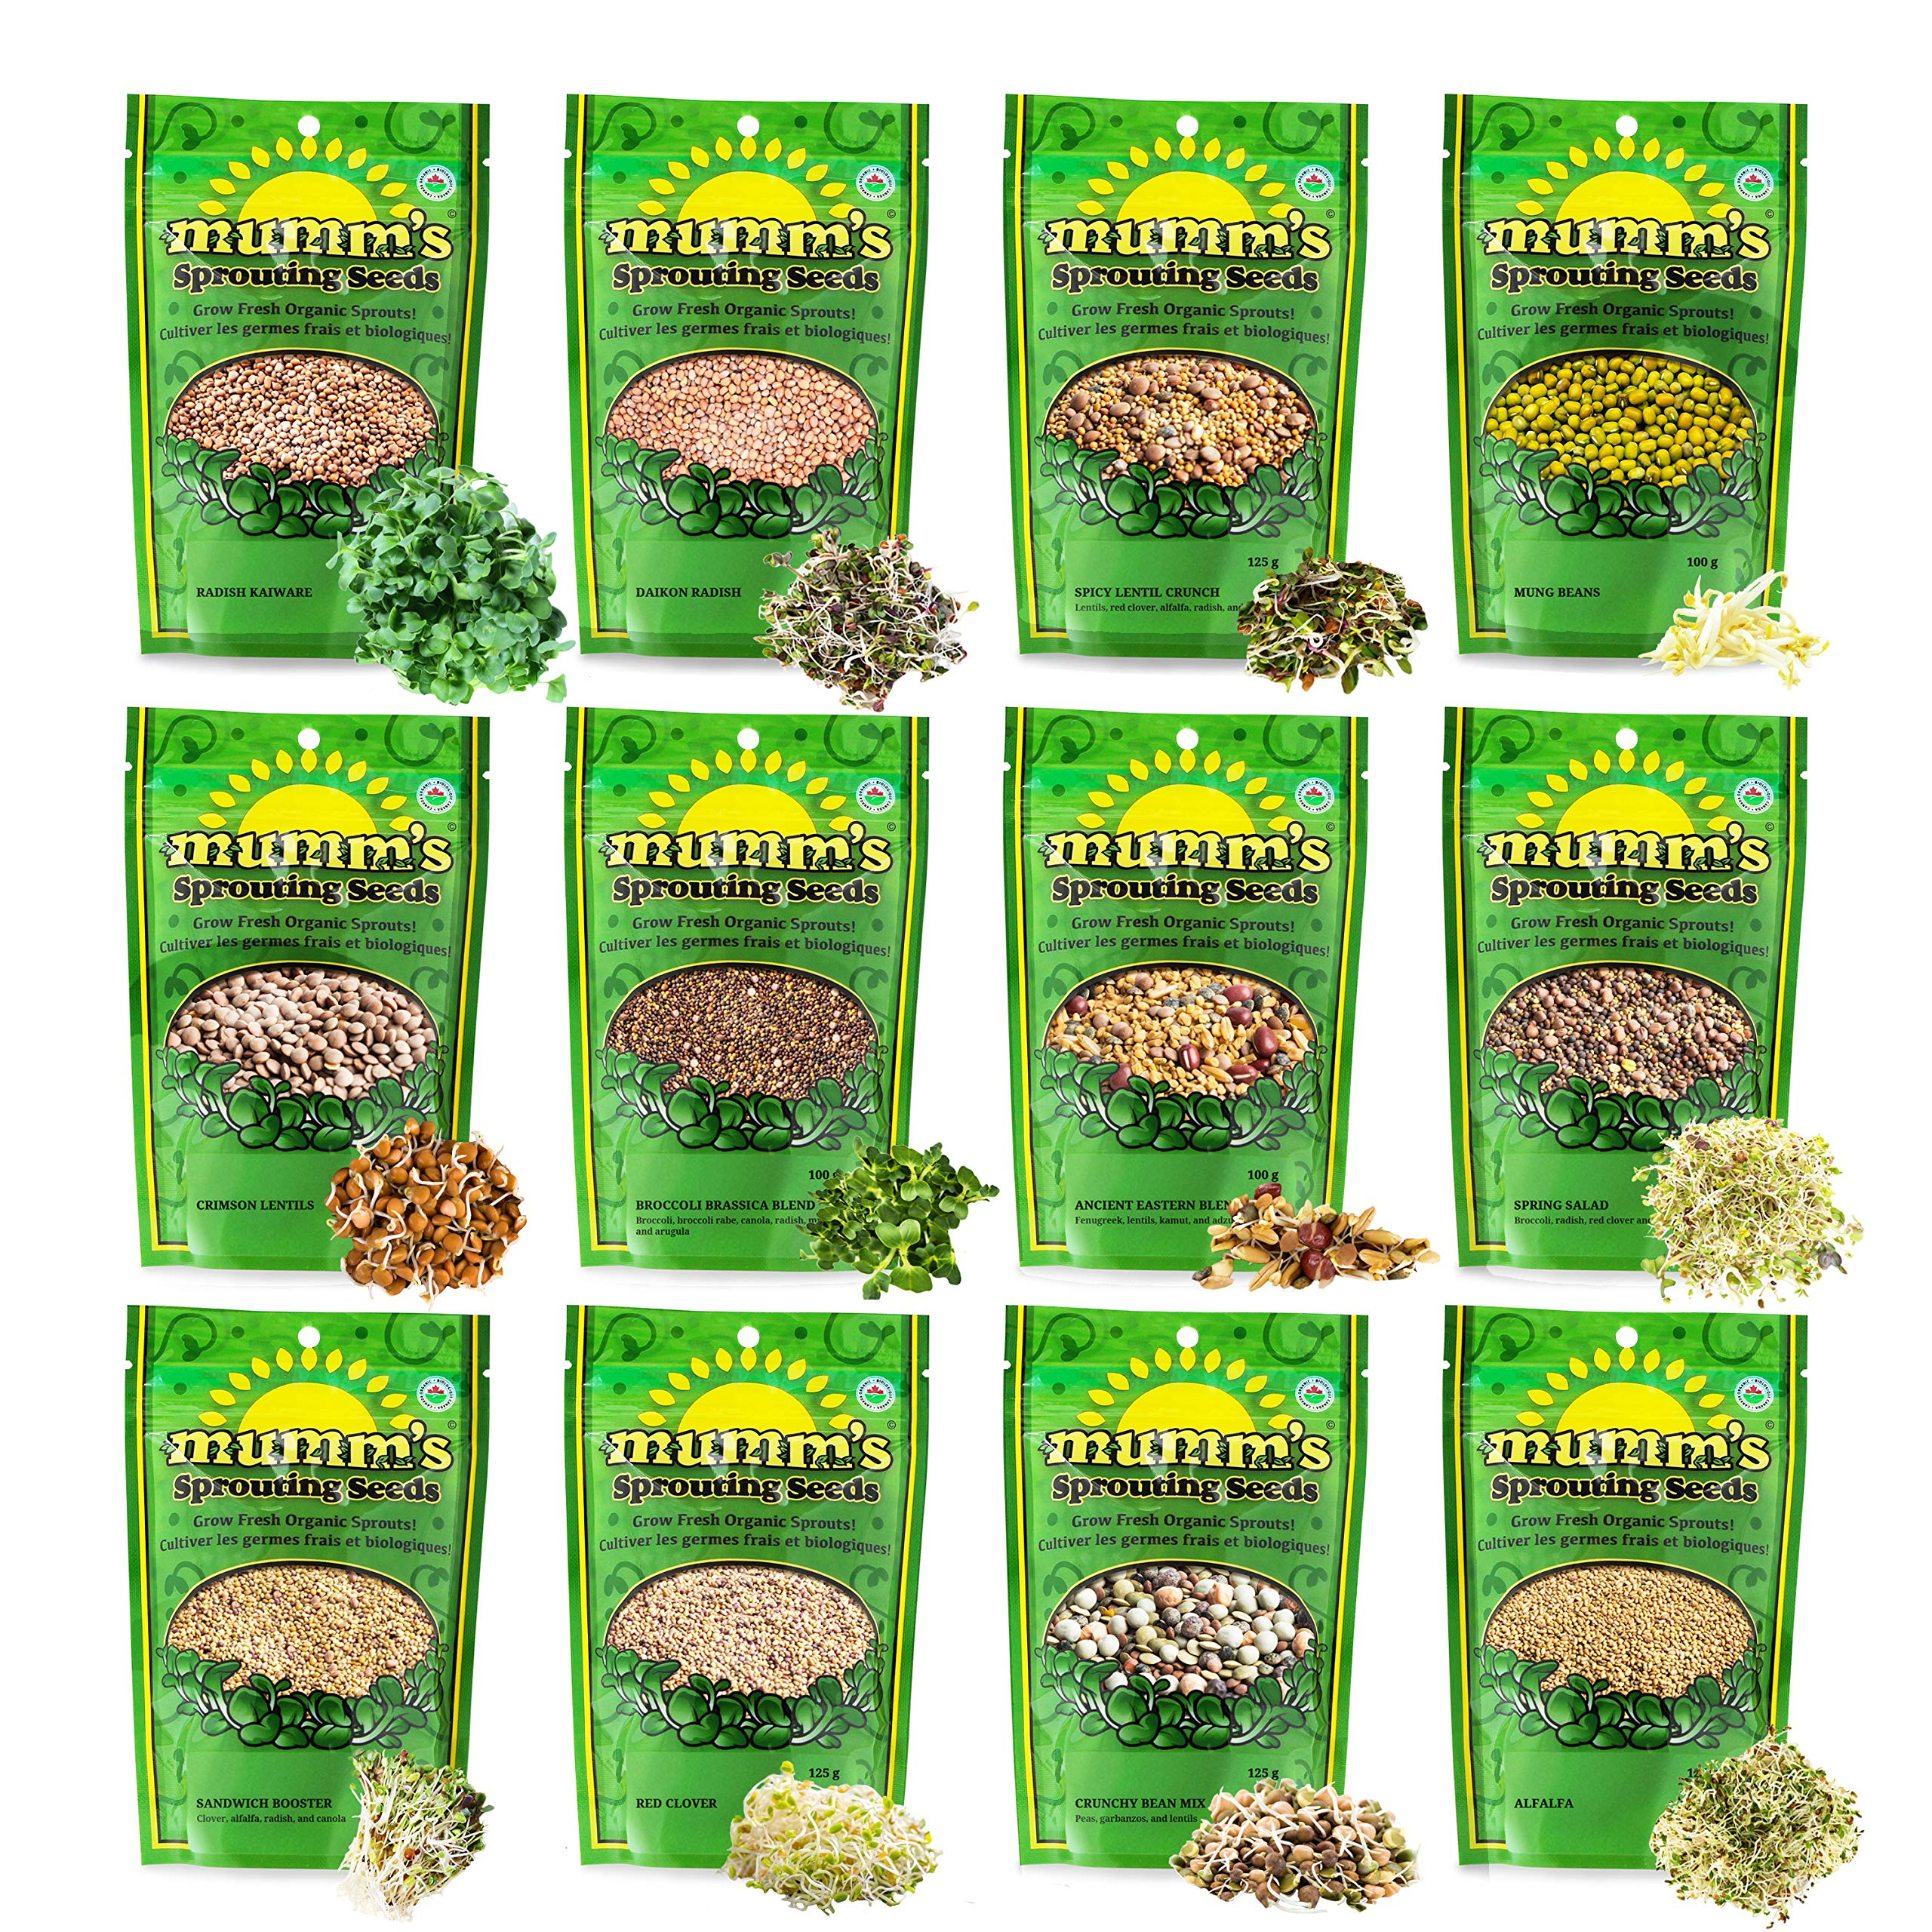 Mumm's Sprouting Seeds - Boosted Sample Pack - 1,325 GR - Organic Sprout Seed Kit - Broccoli, Radish, Alfalfa, Mung Bean